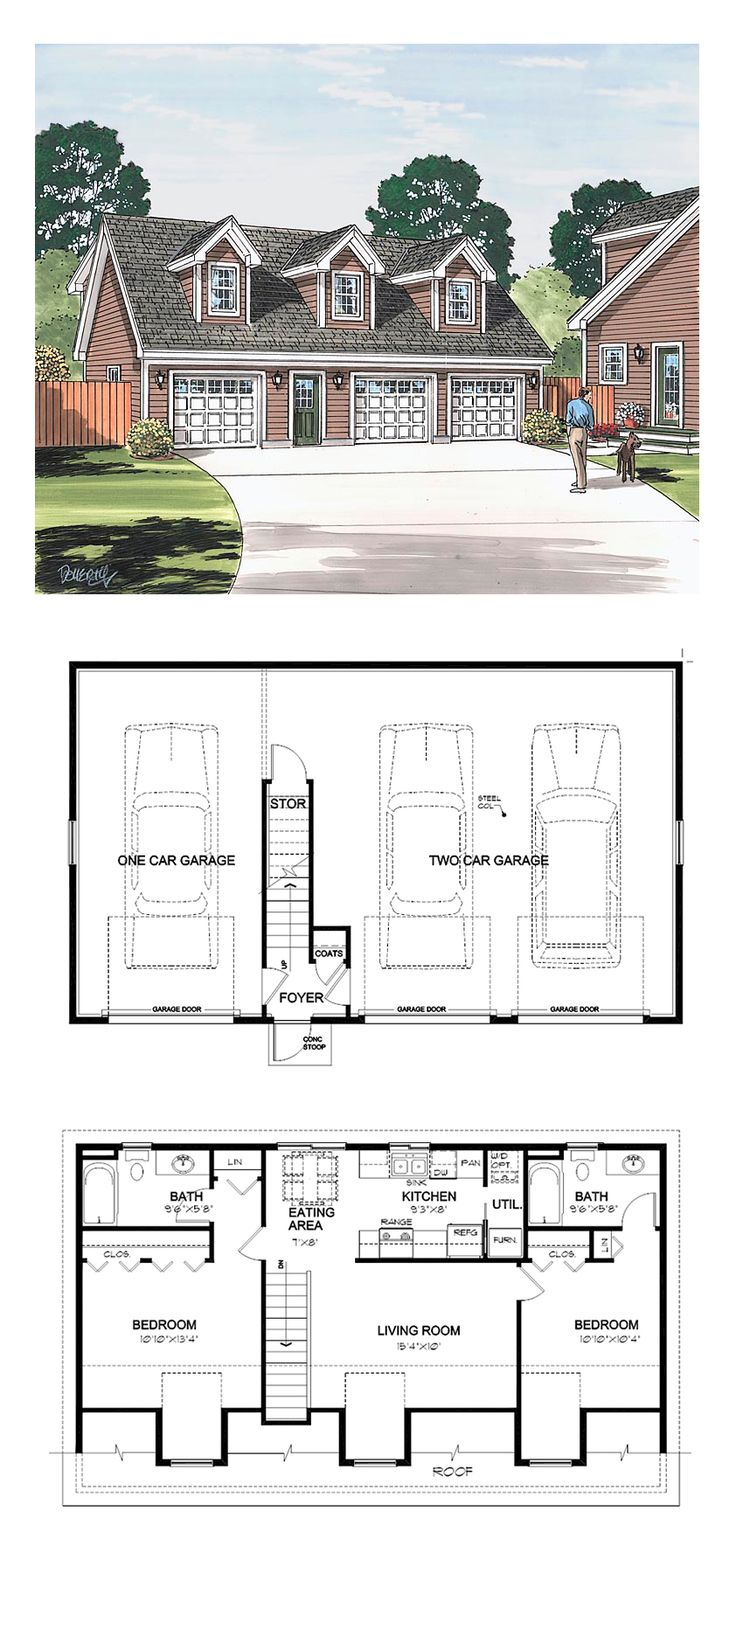 Awesome Garage Apartment Plan 30032 | Total Living Area: 887 Sq. Ft., 2